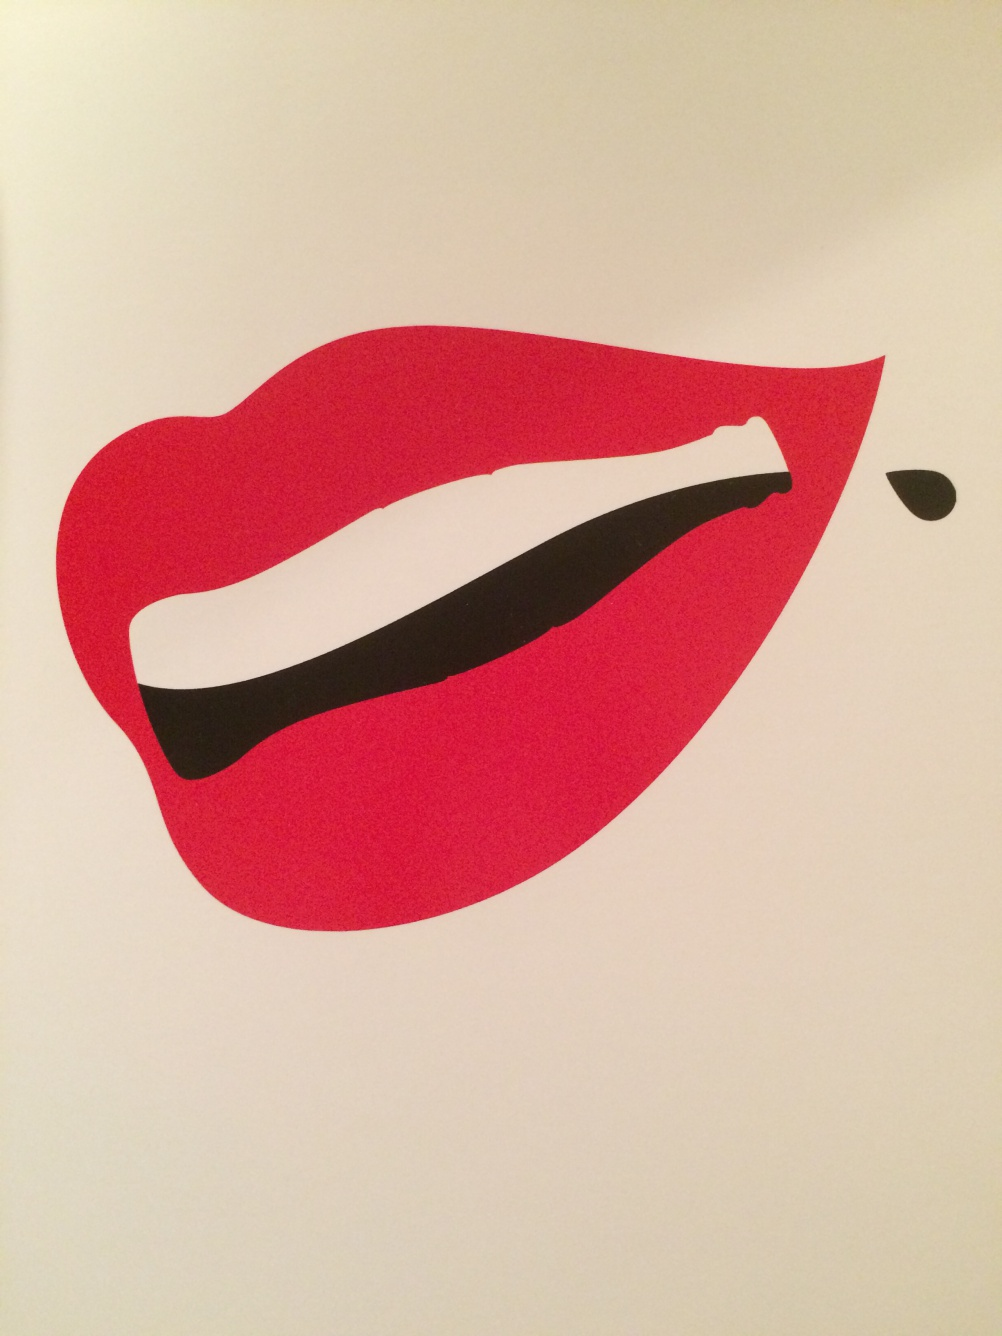 Rapha Abreu, Coca-Cola Design, Lips, 2014